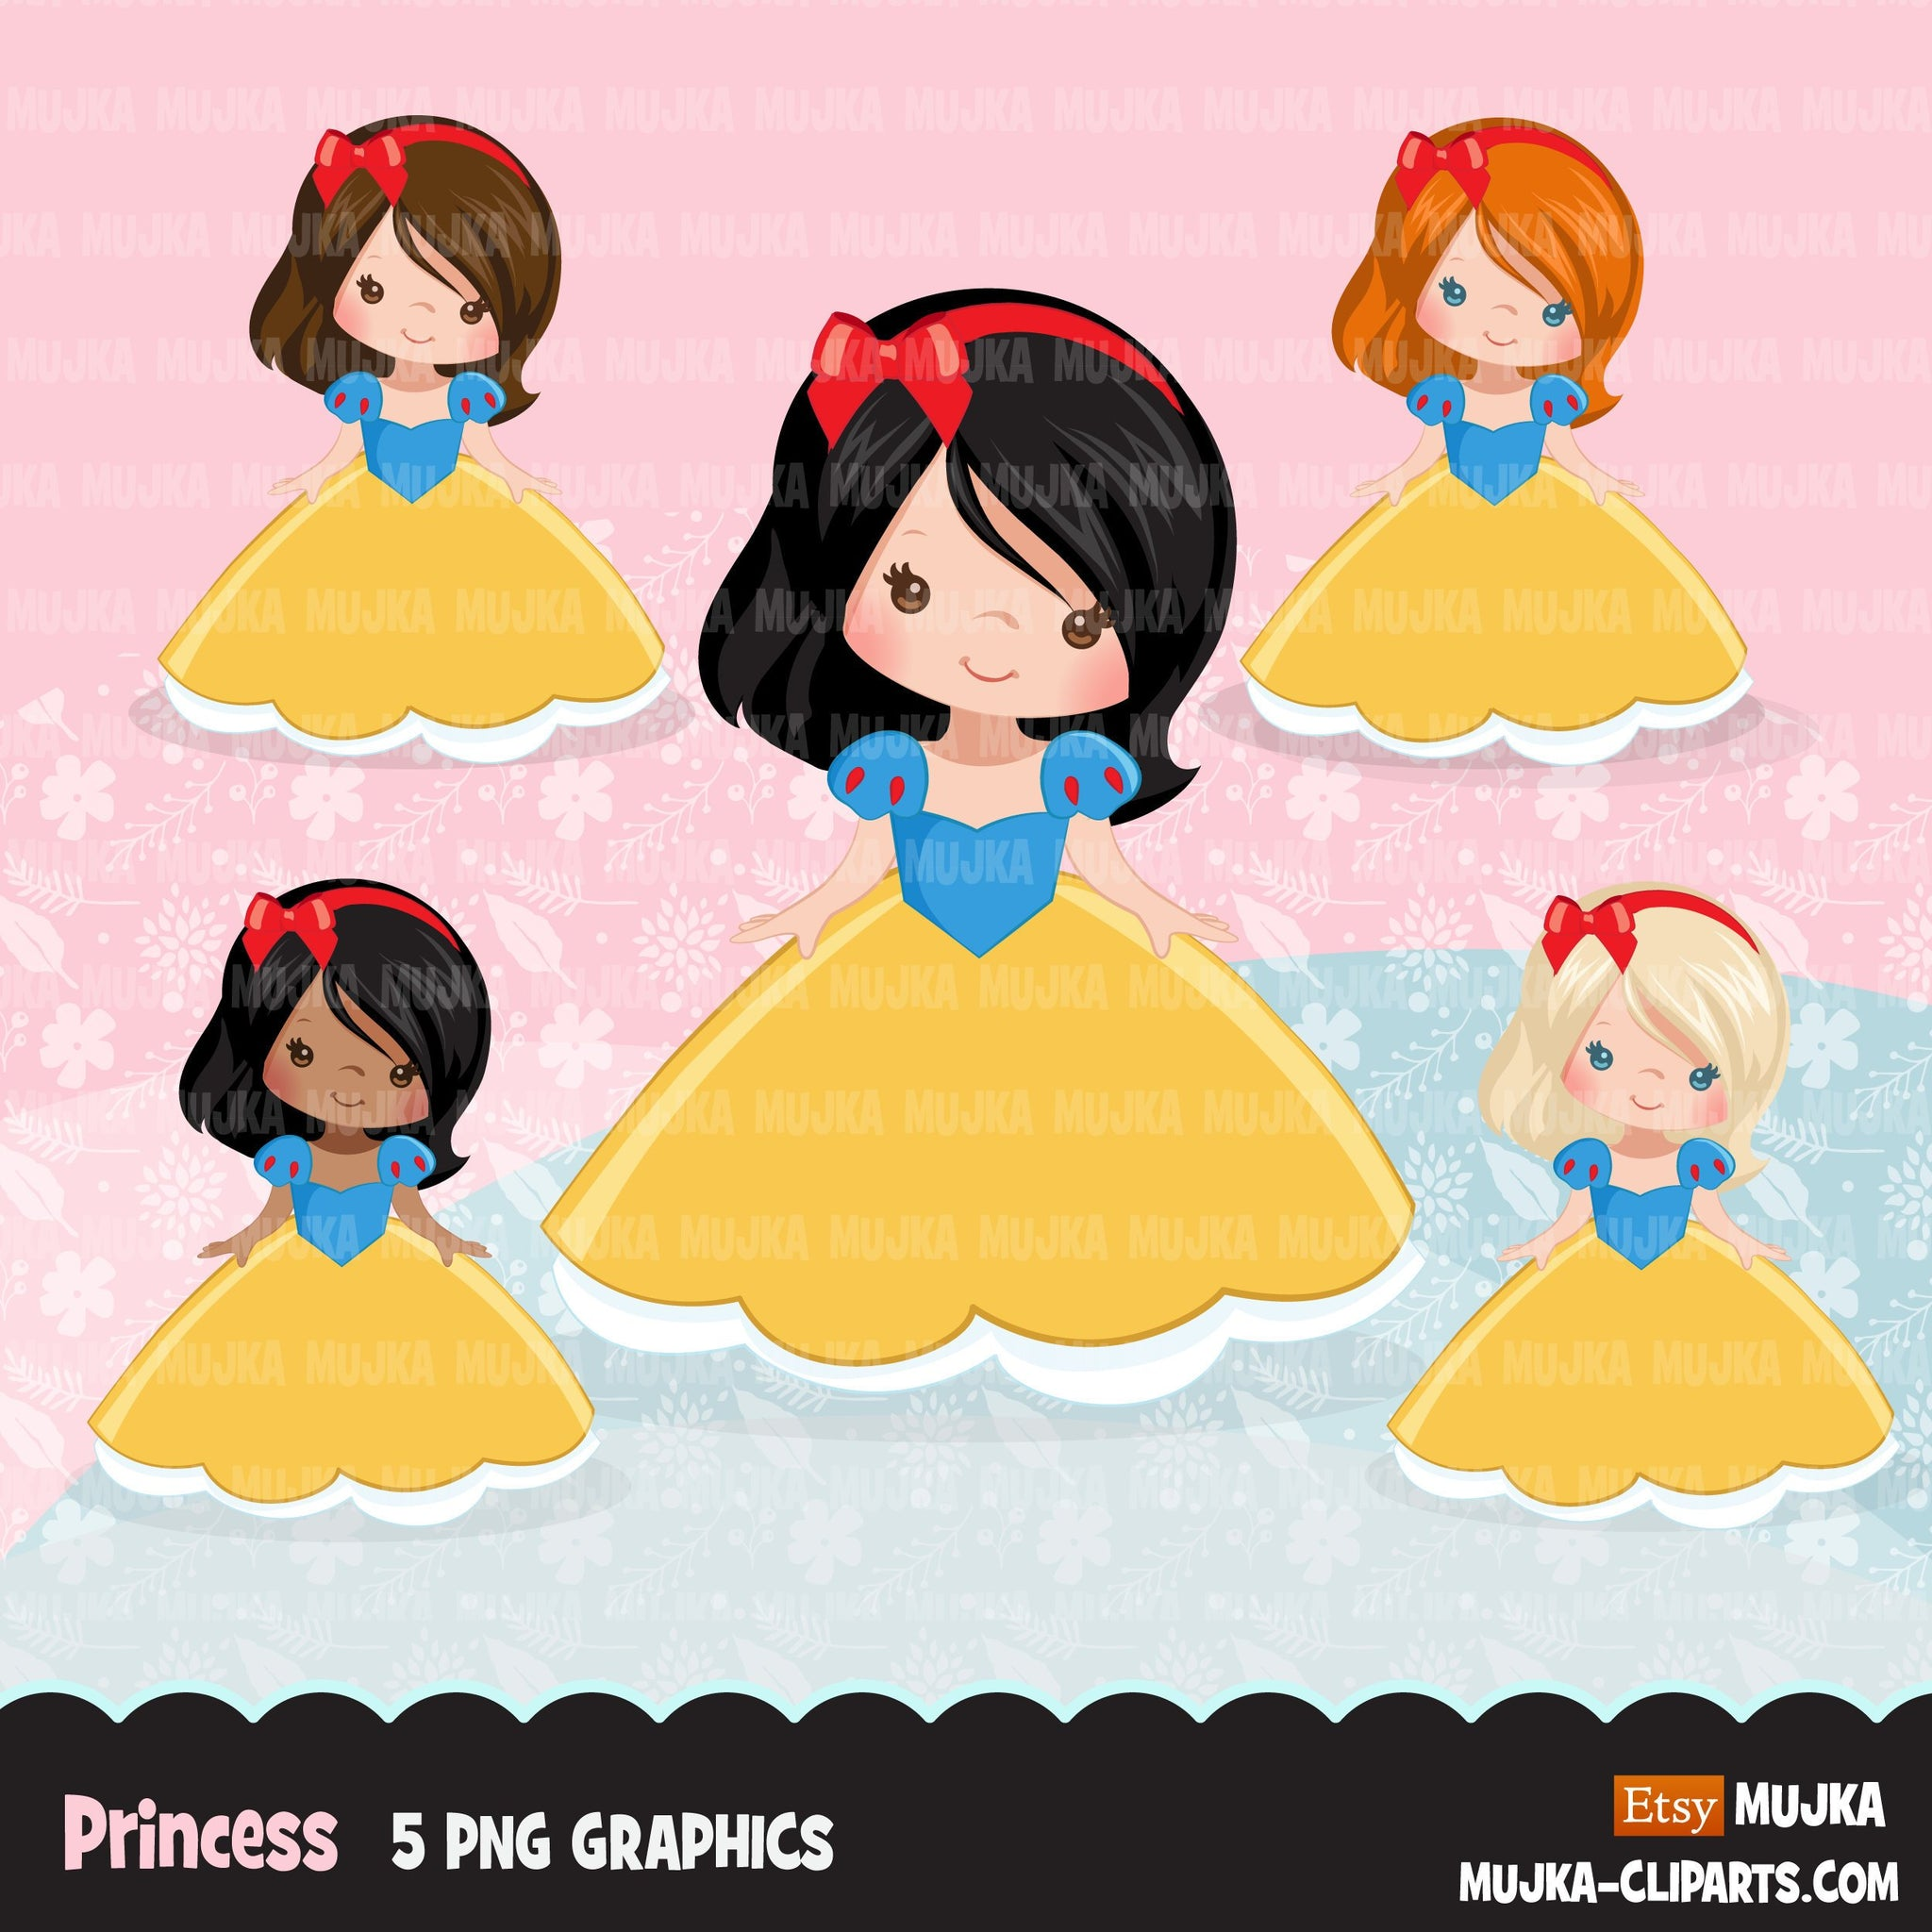 Princess clipart, fairy tale graphics, girls story book, red, blue, yellow princess dress, personal use clip art